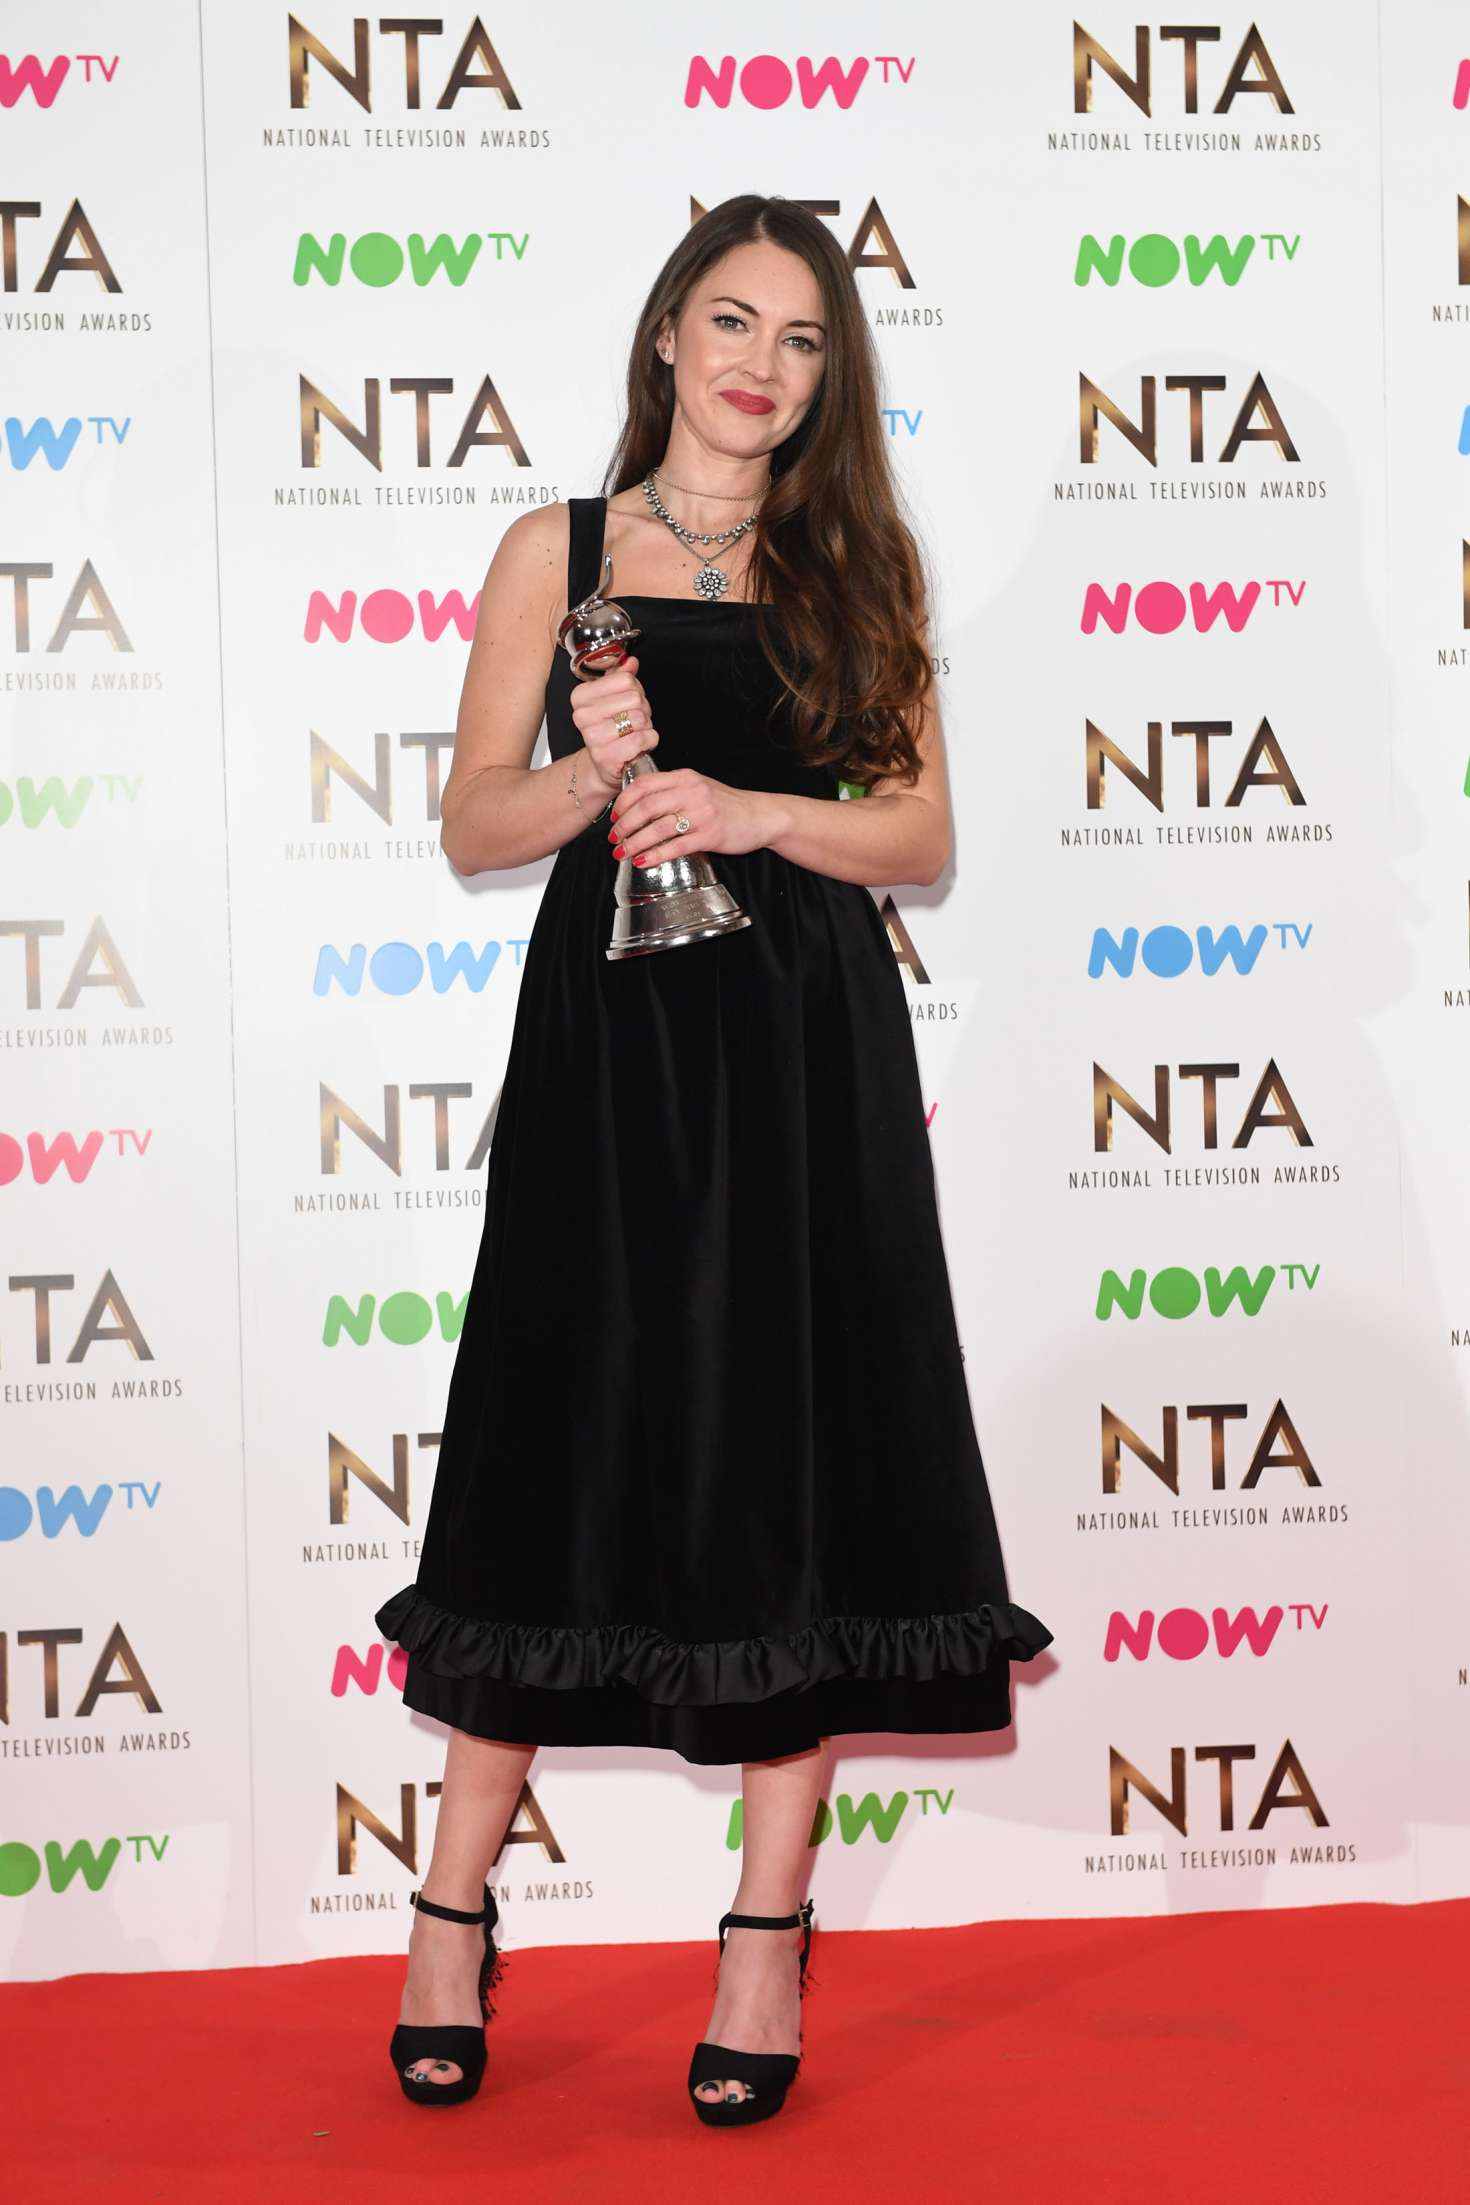 Lacey Turner 2017 : Lacey Turner: 2017 National Television Awards -08